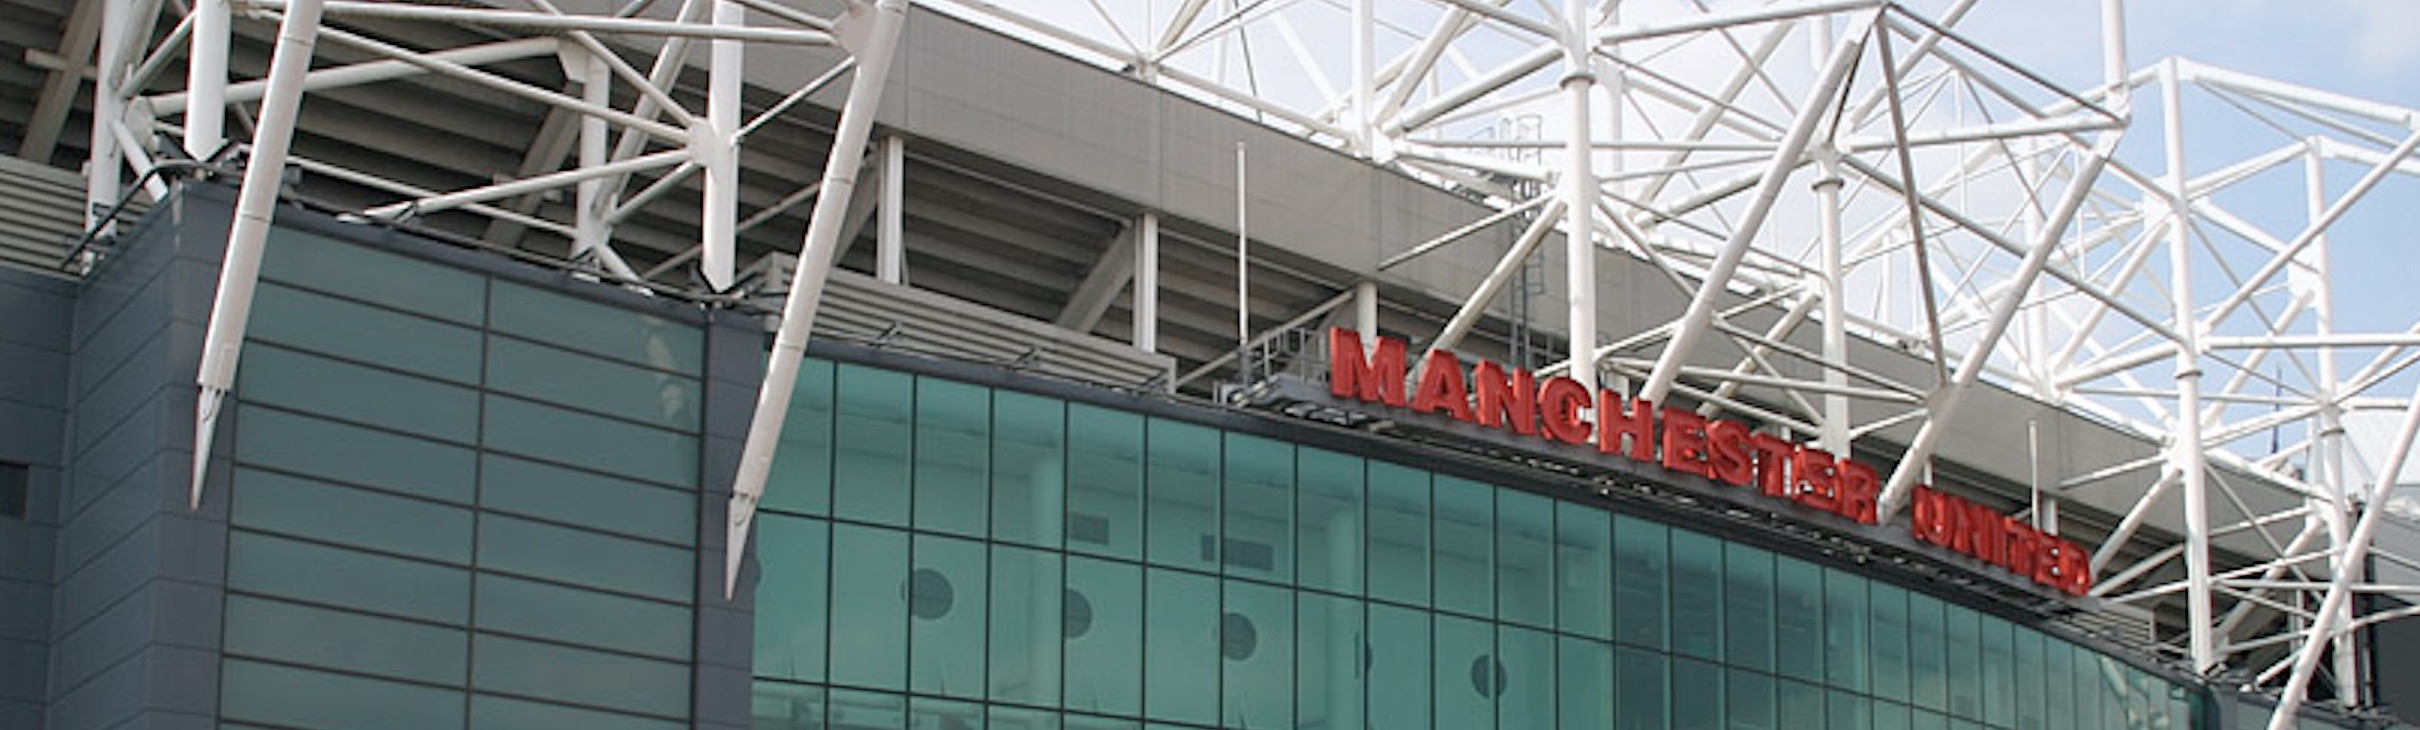 Man United V Man City - Coach/Ferry & Hotel